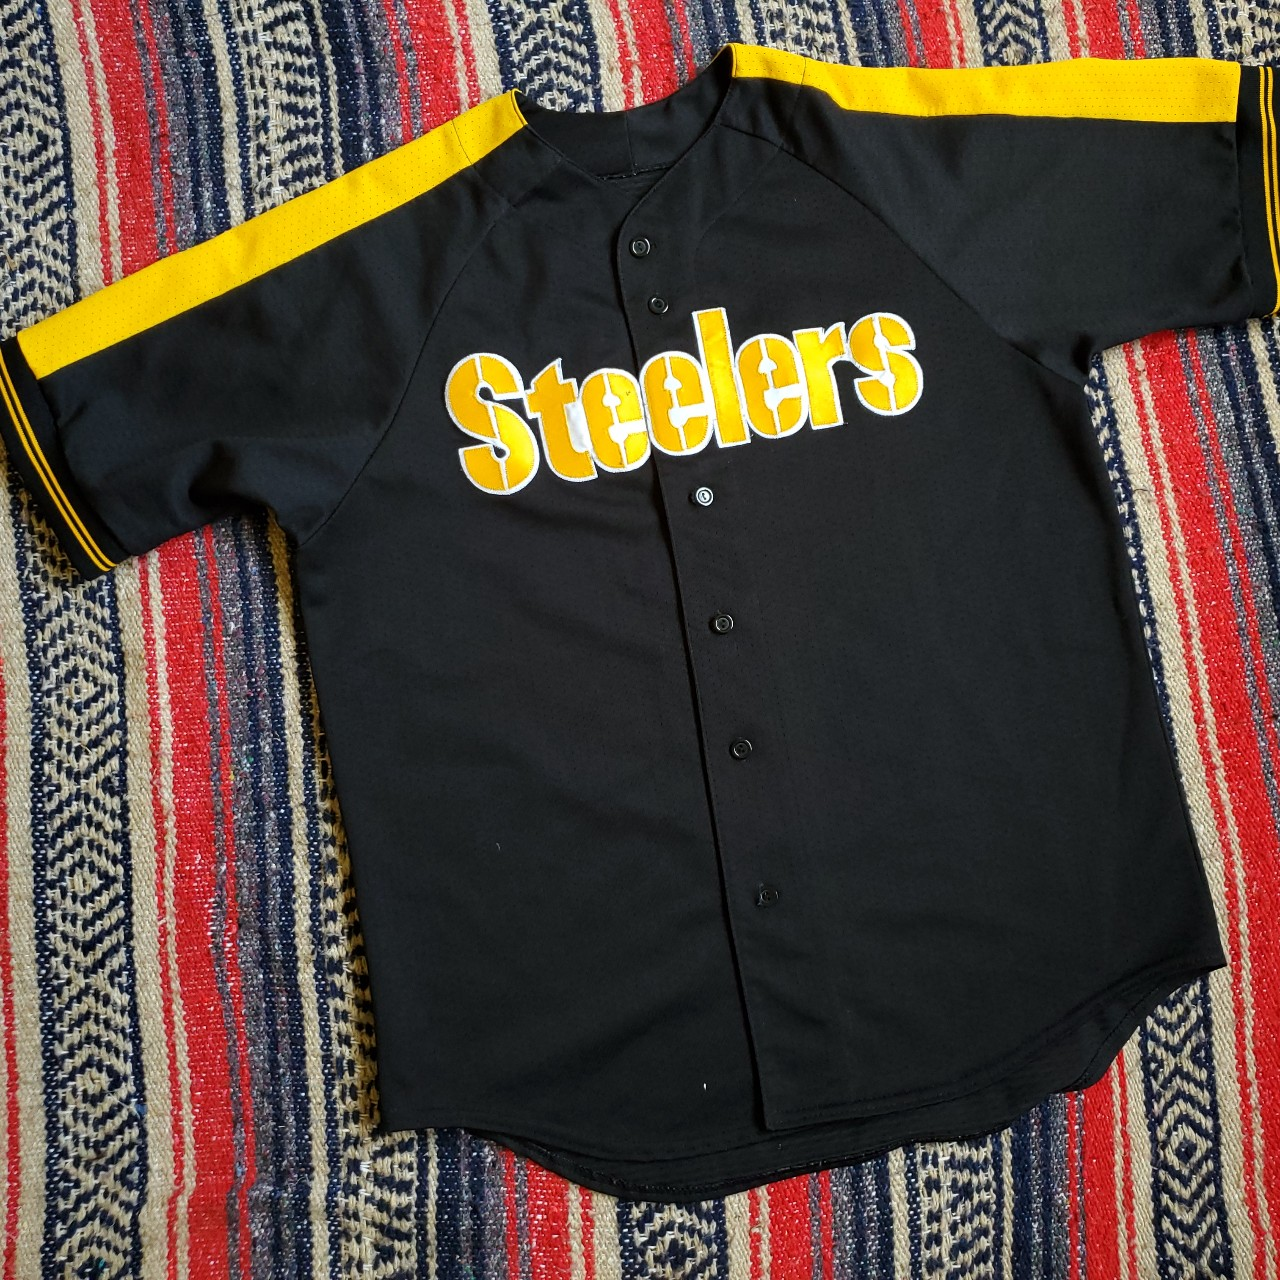 check out 781d2 e7a9c Vintage 1990s Pittsburgh Steelers Baseball Style... - Depop